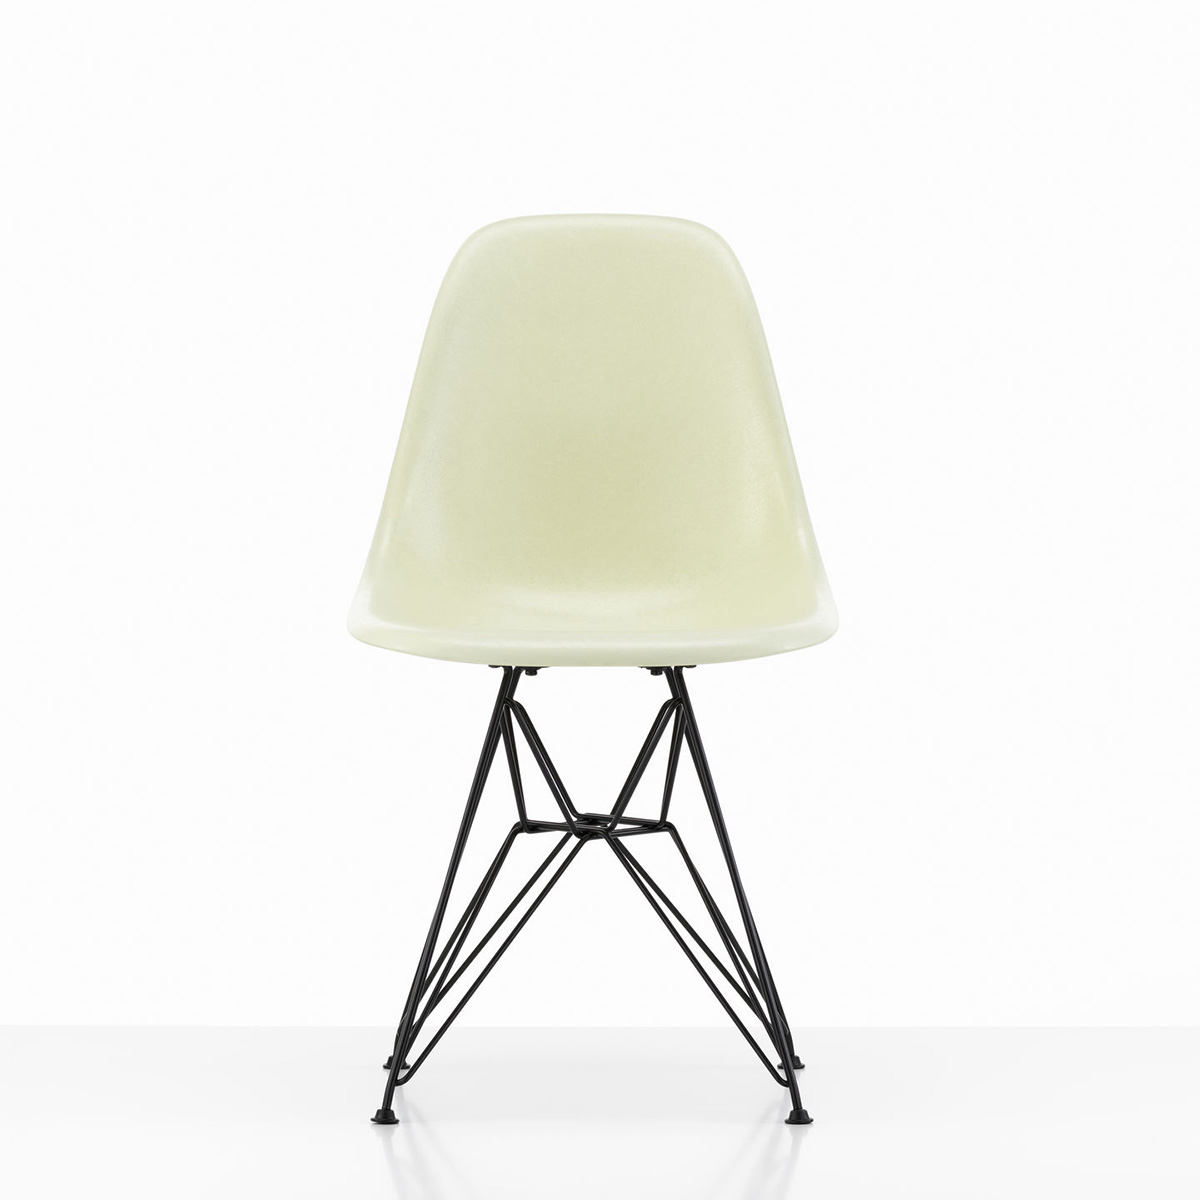 gallery-13418-for-VITRA0096